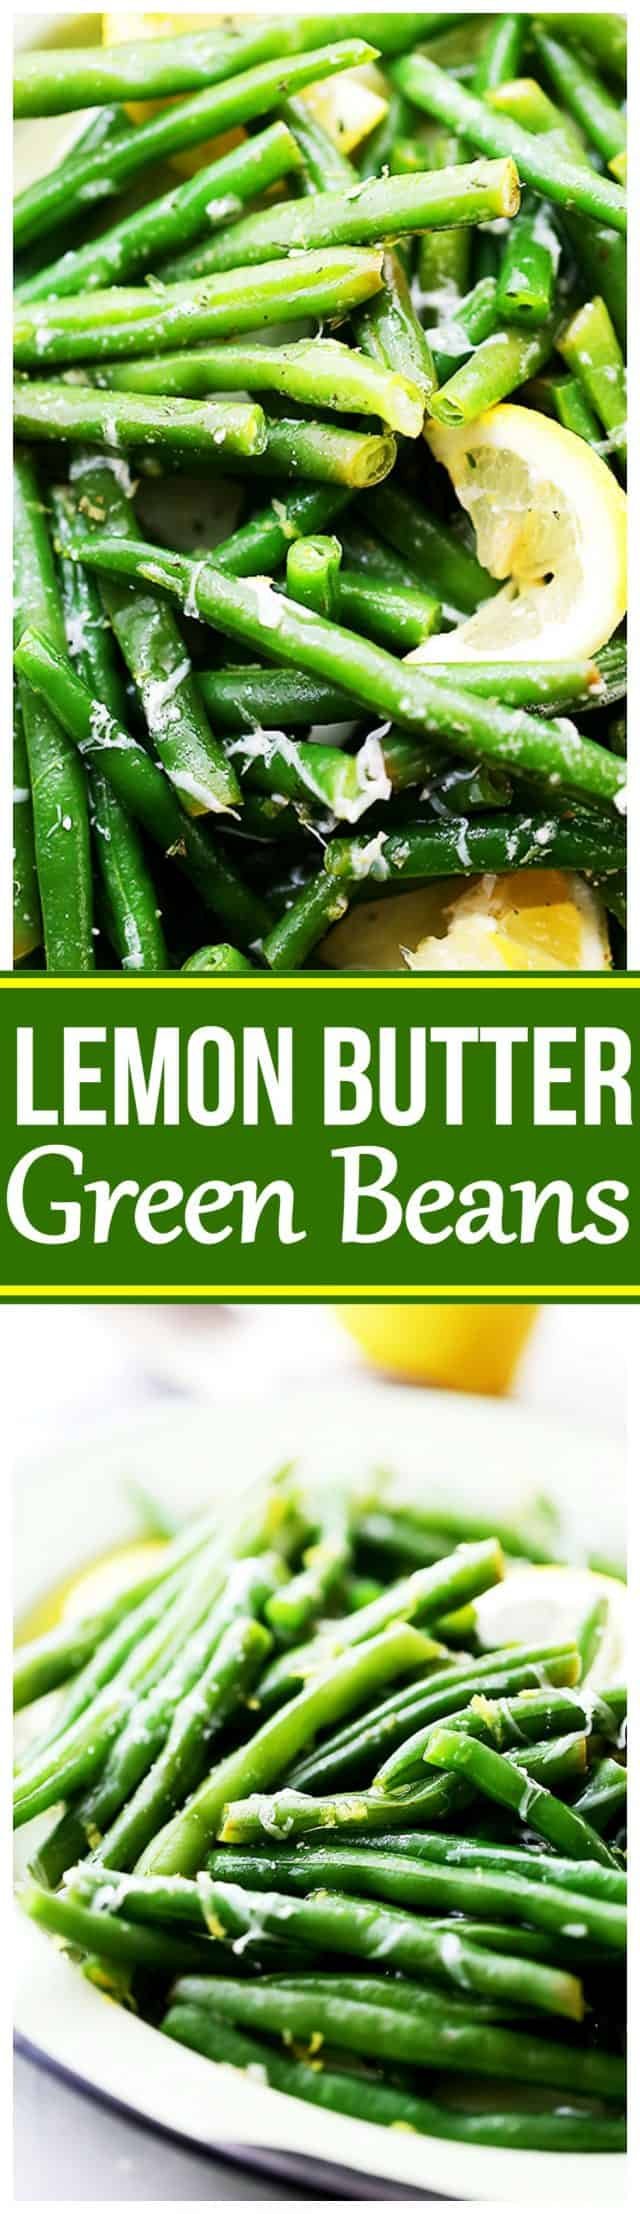 Lemon Butter Green Beans - Steamed fresh green beans tossed with butter and parmesan cheese.